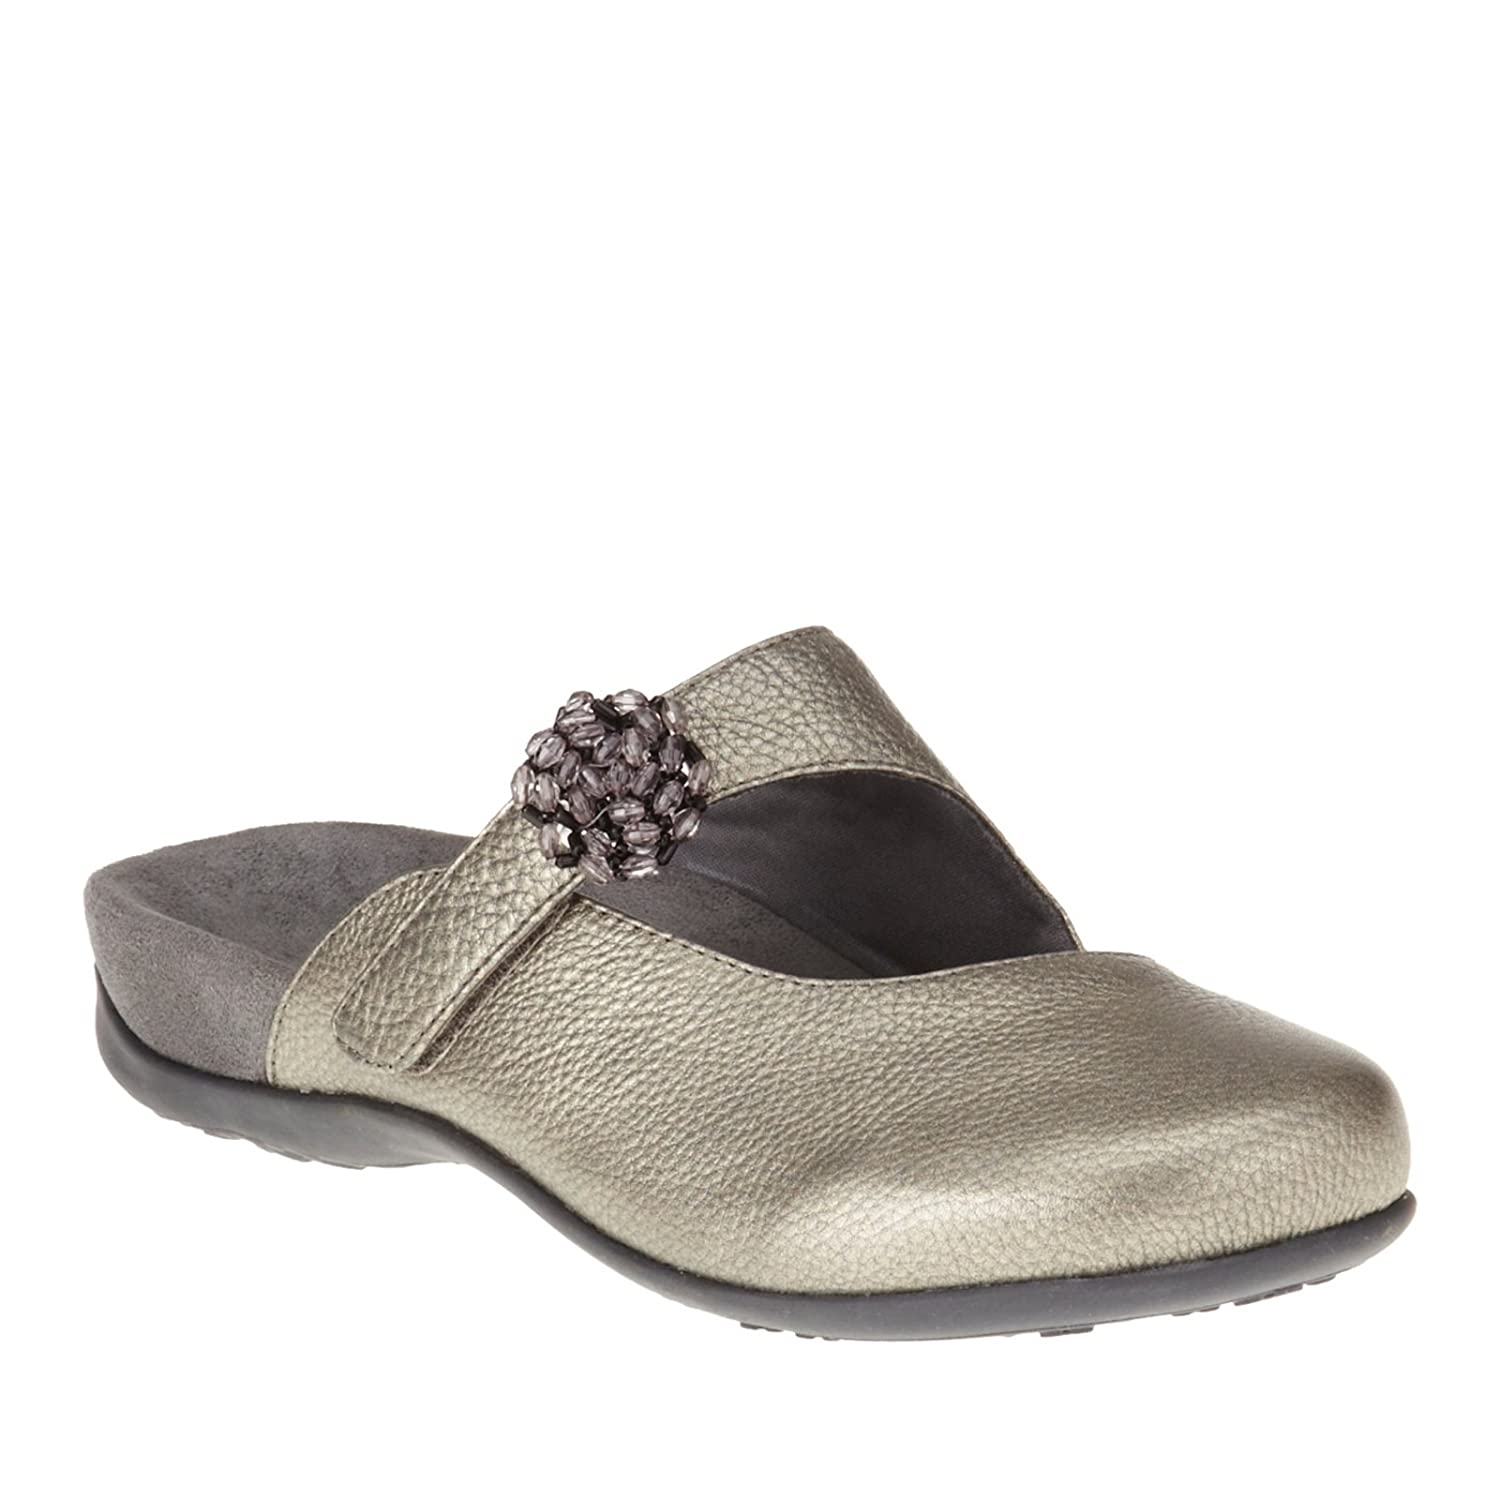 Vionic with Orthaheel Technology Womens Joan Mary Jane Mule B00LQHPAZQ 9 B(M) US|Pewter Metallic